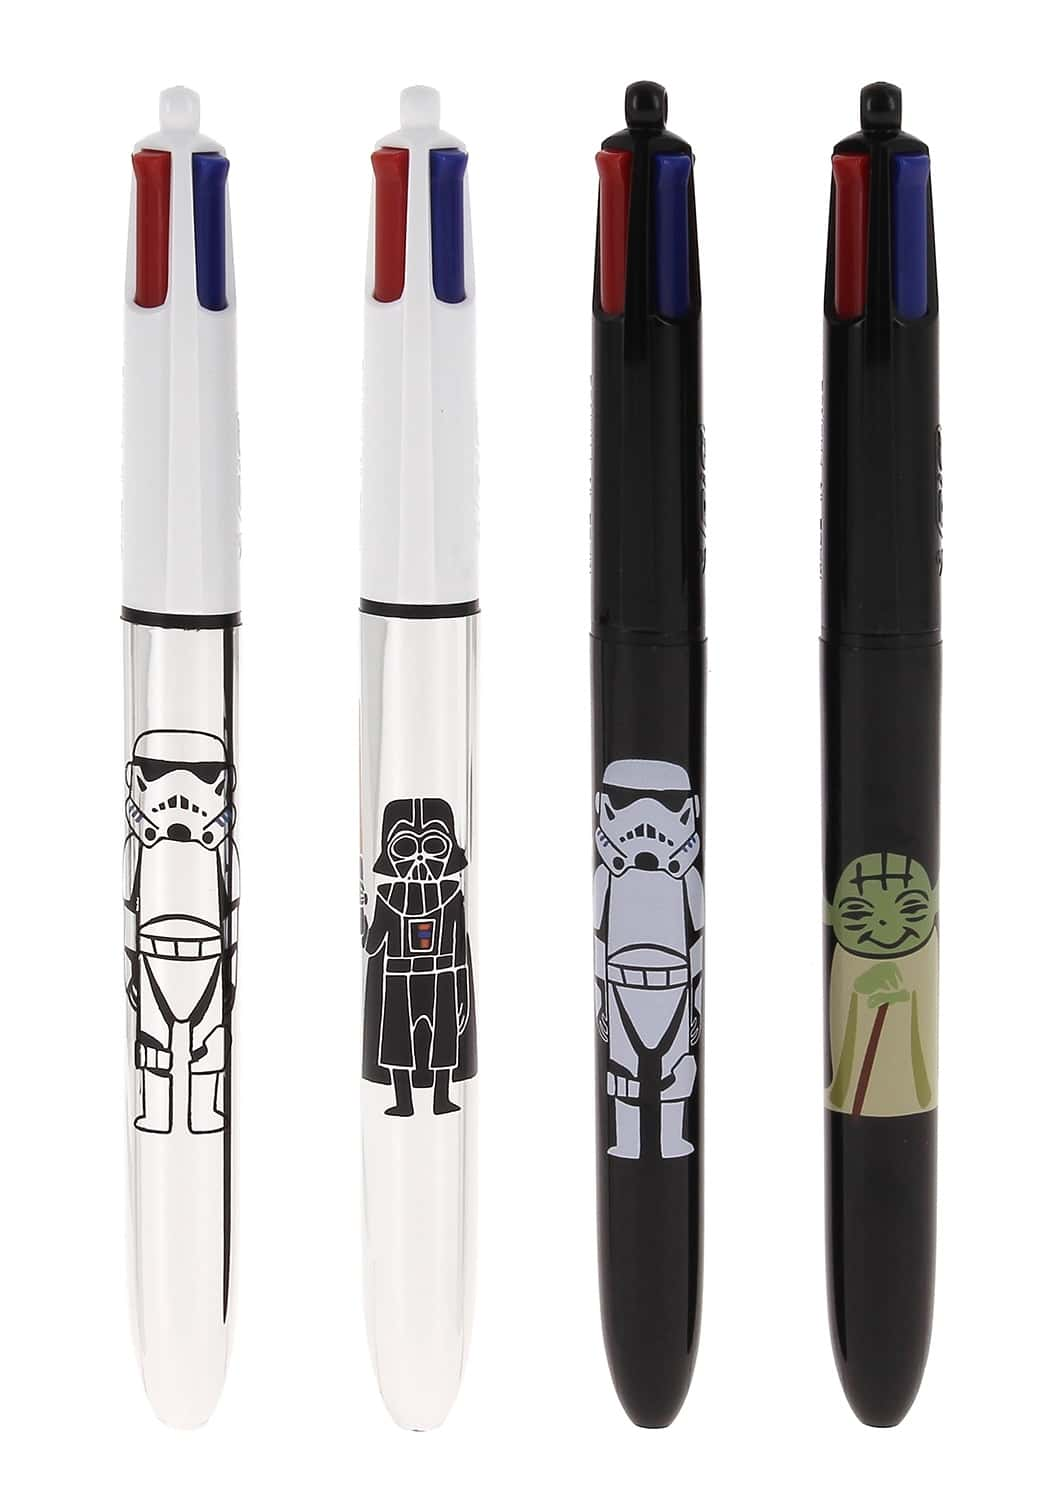 stylo 4 couleurs star wars bic